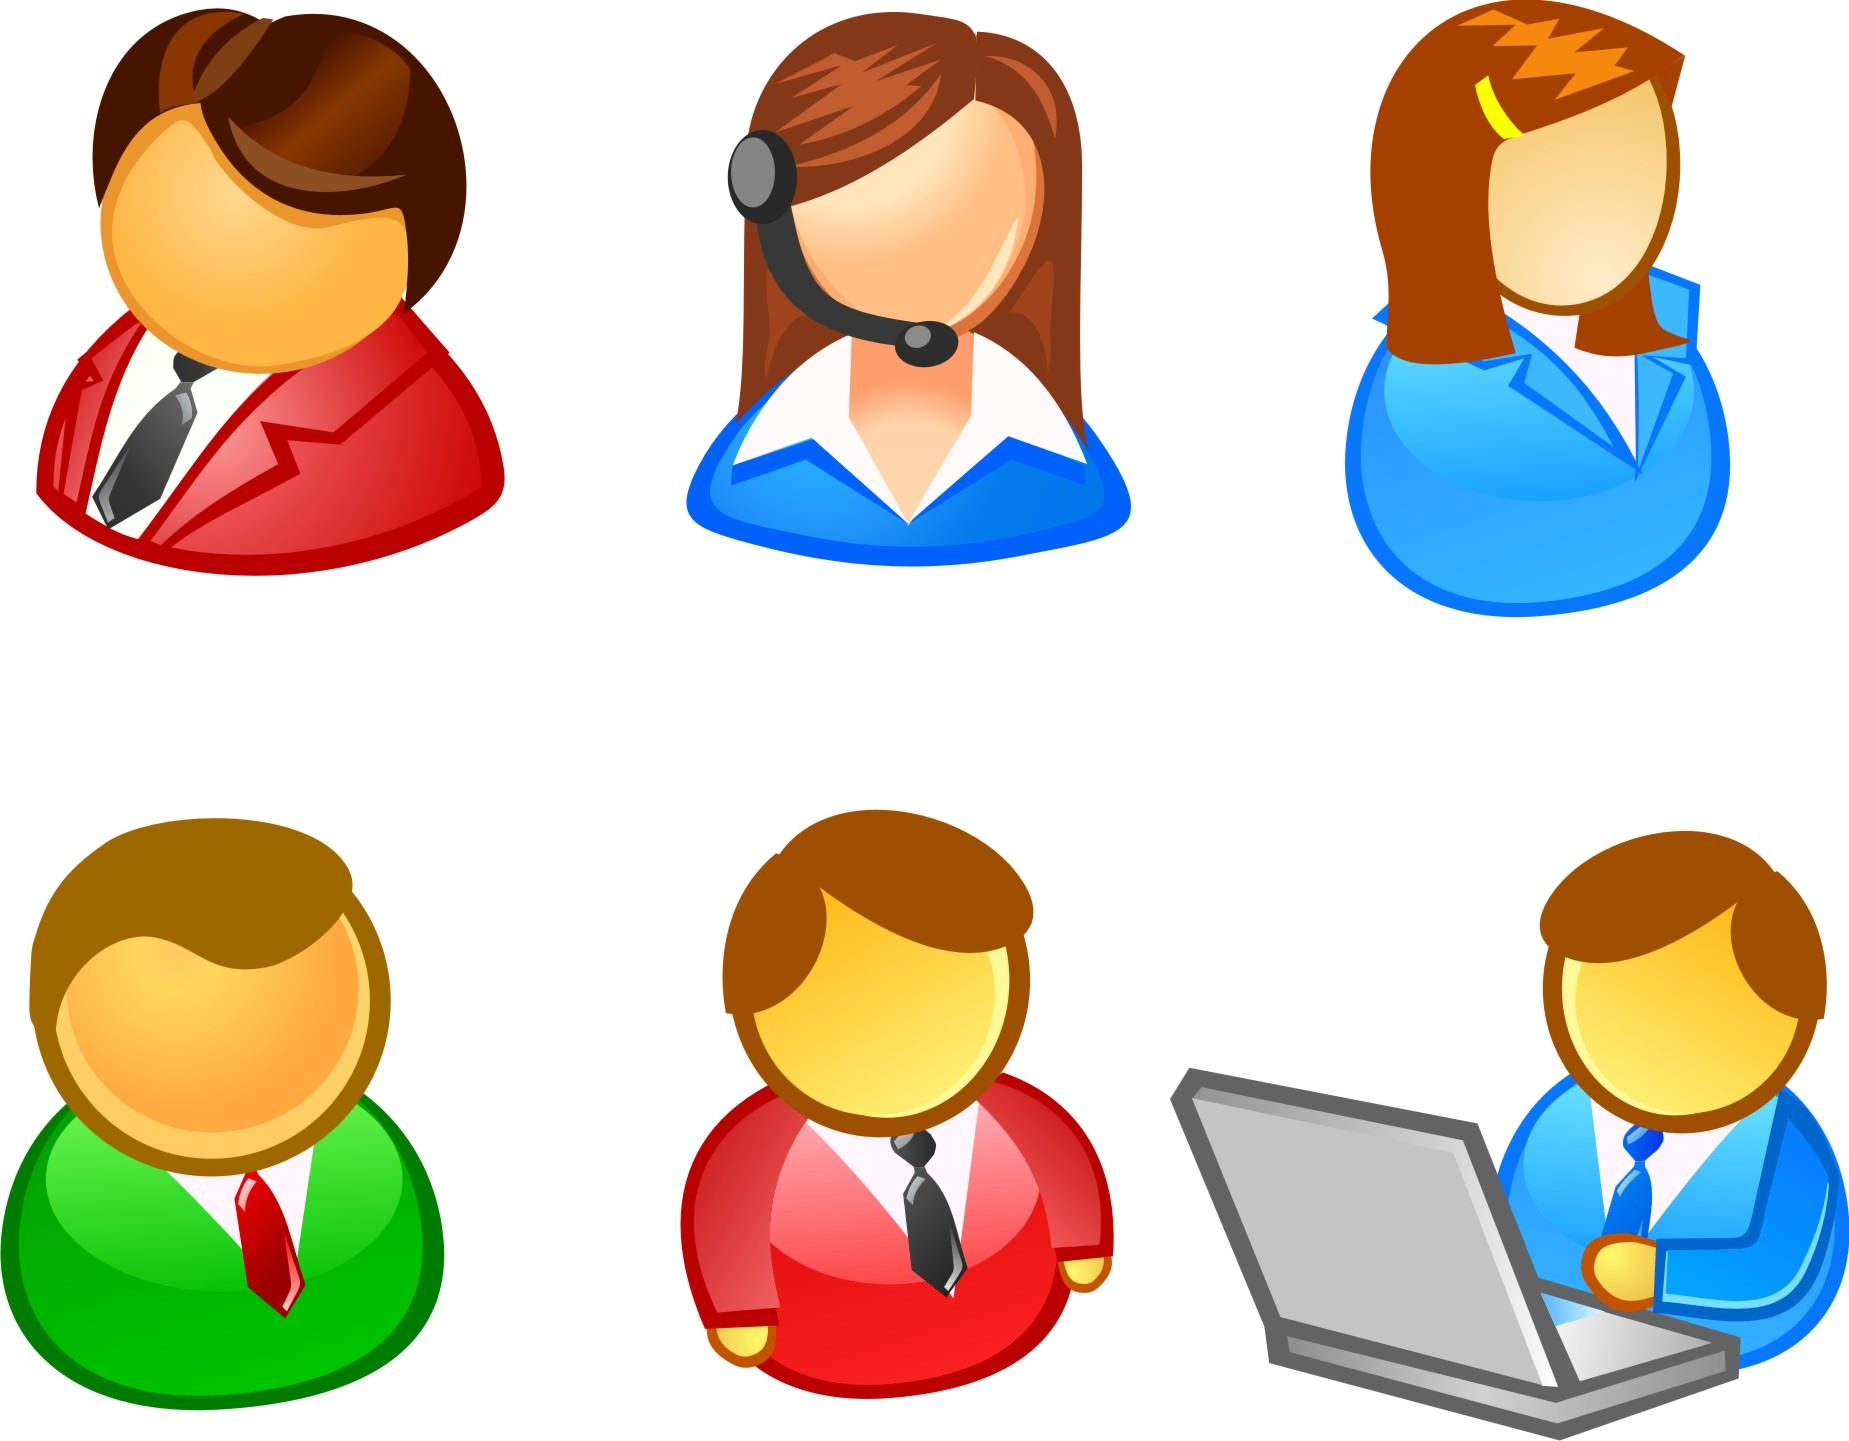 free-vector-people-user-icon-vector_018957_Free_Vector_People